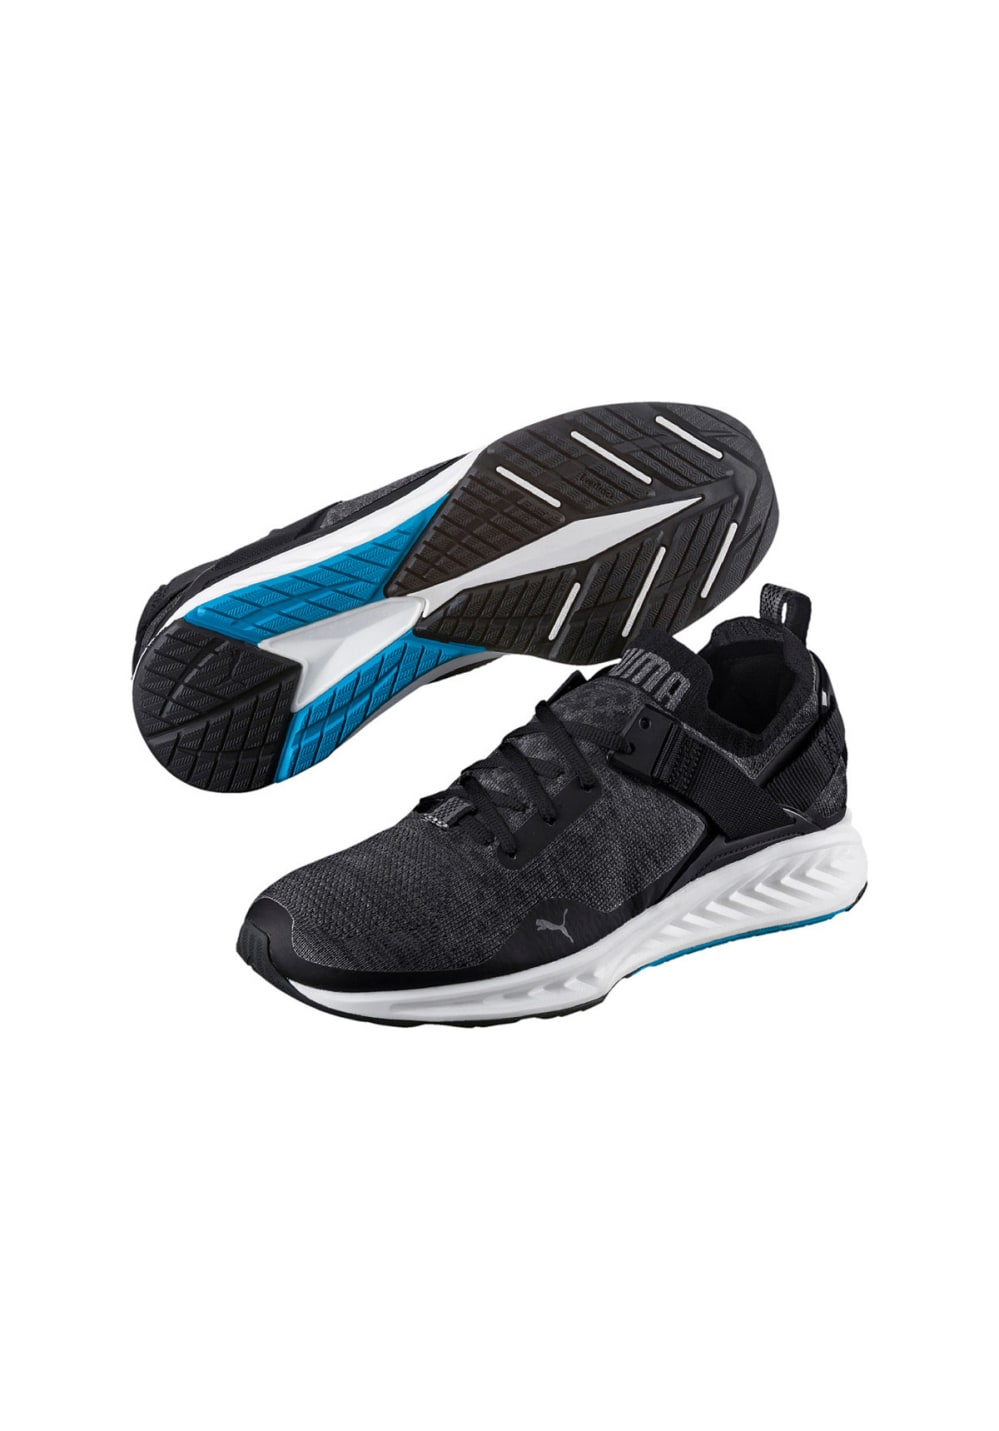 Puma IGNITE evoKNIT Low Chaussures running pour Homme Noir